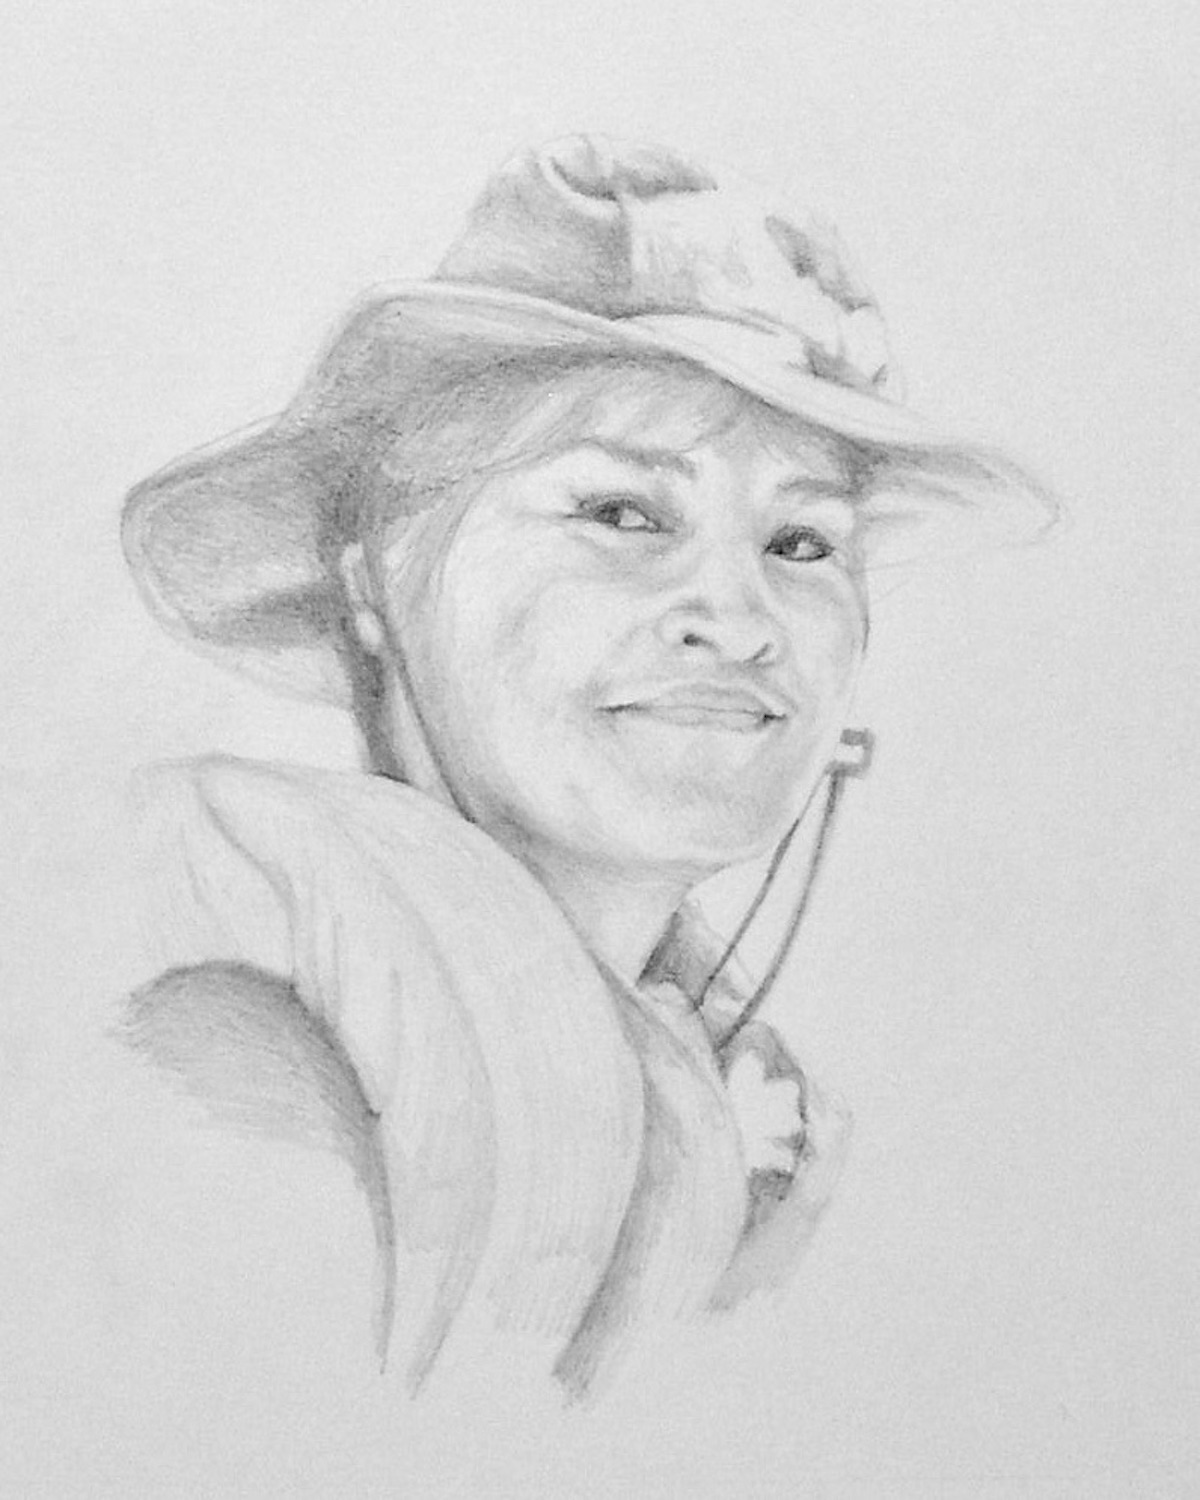 pencil sketch of young woman in a sun hat